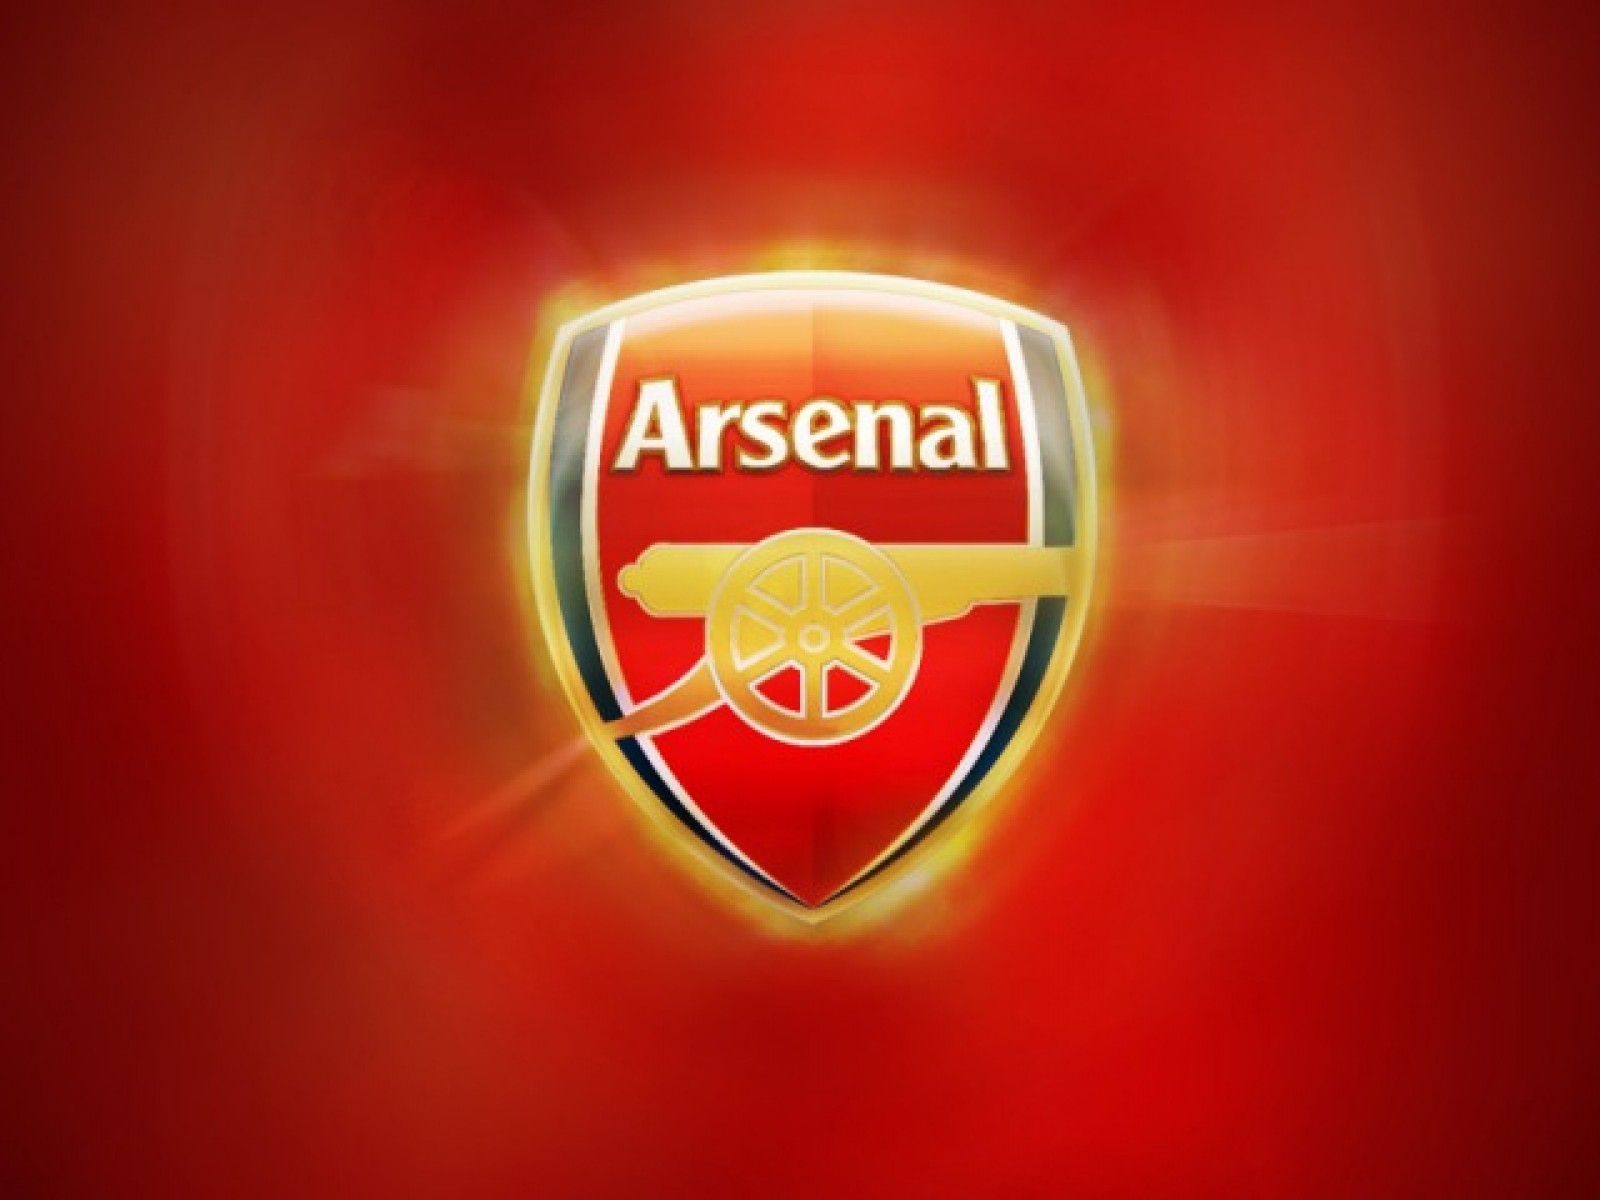 h236nh n�n đ��p logo arsenal 30